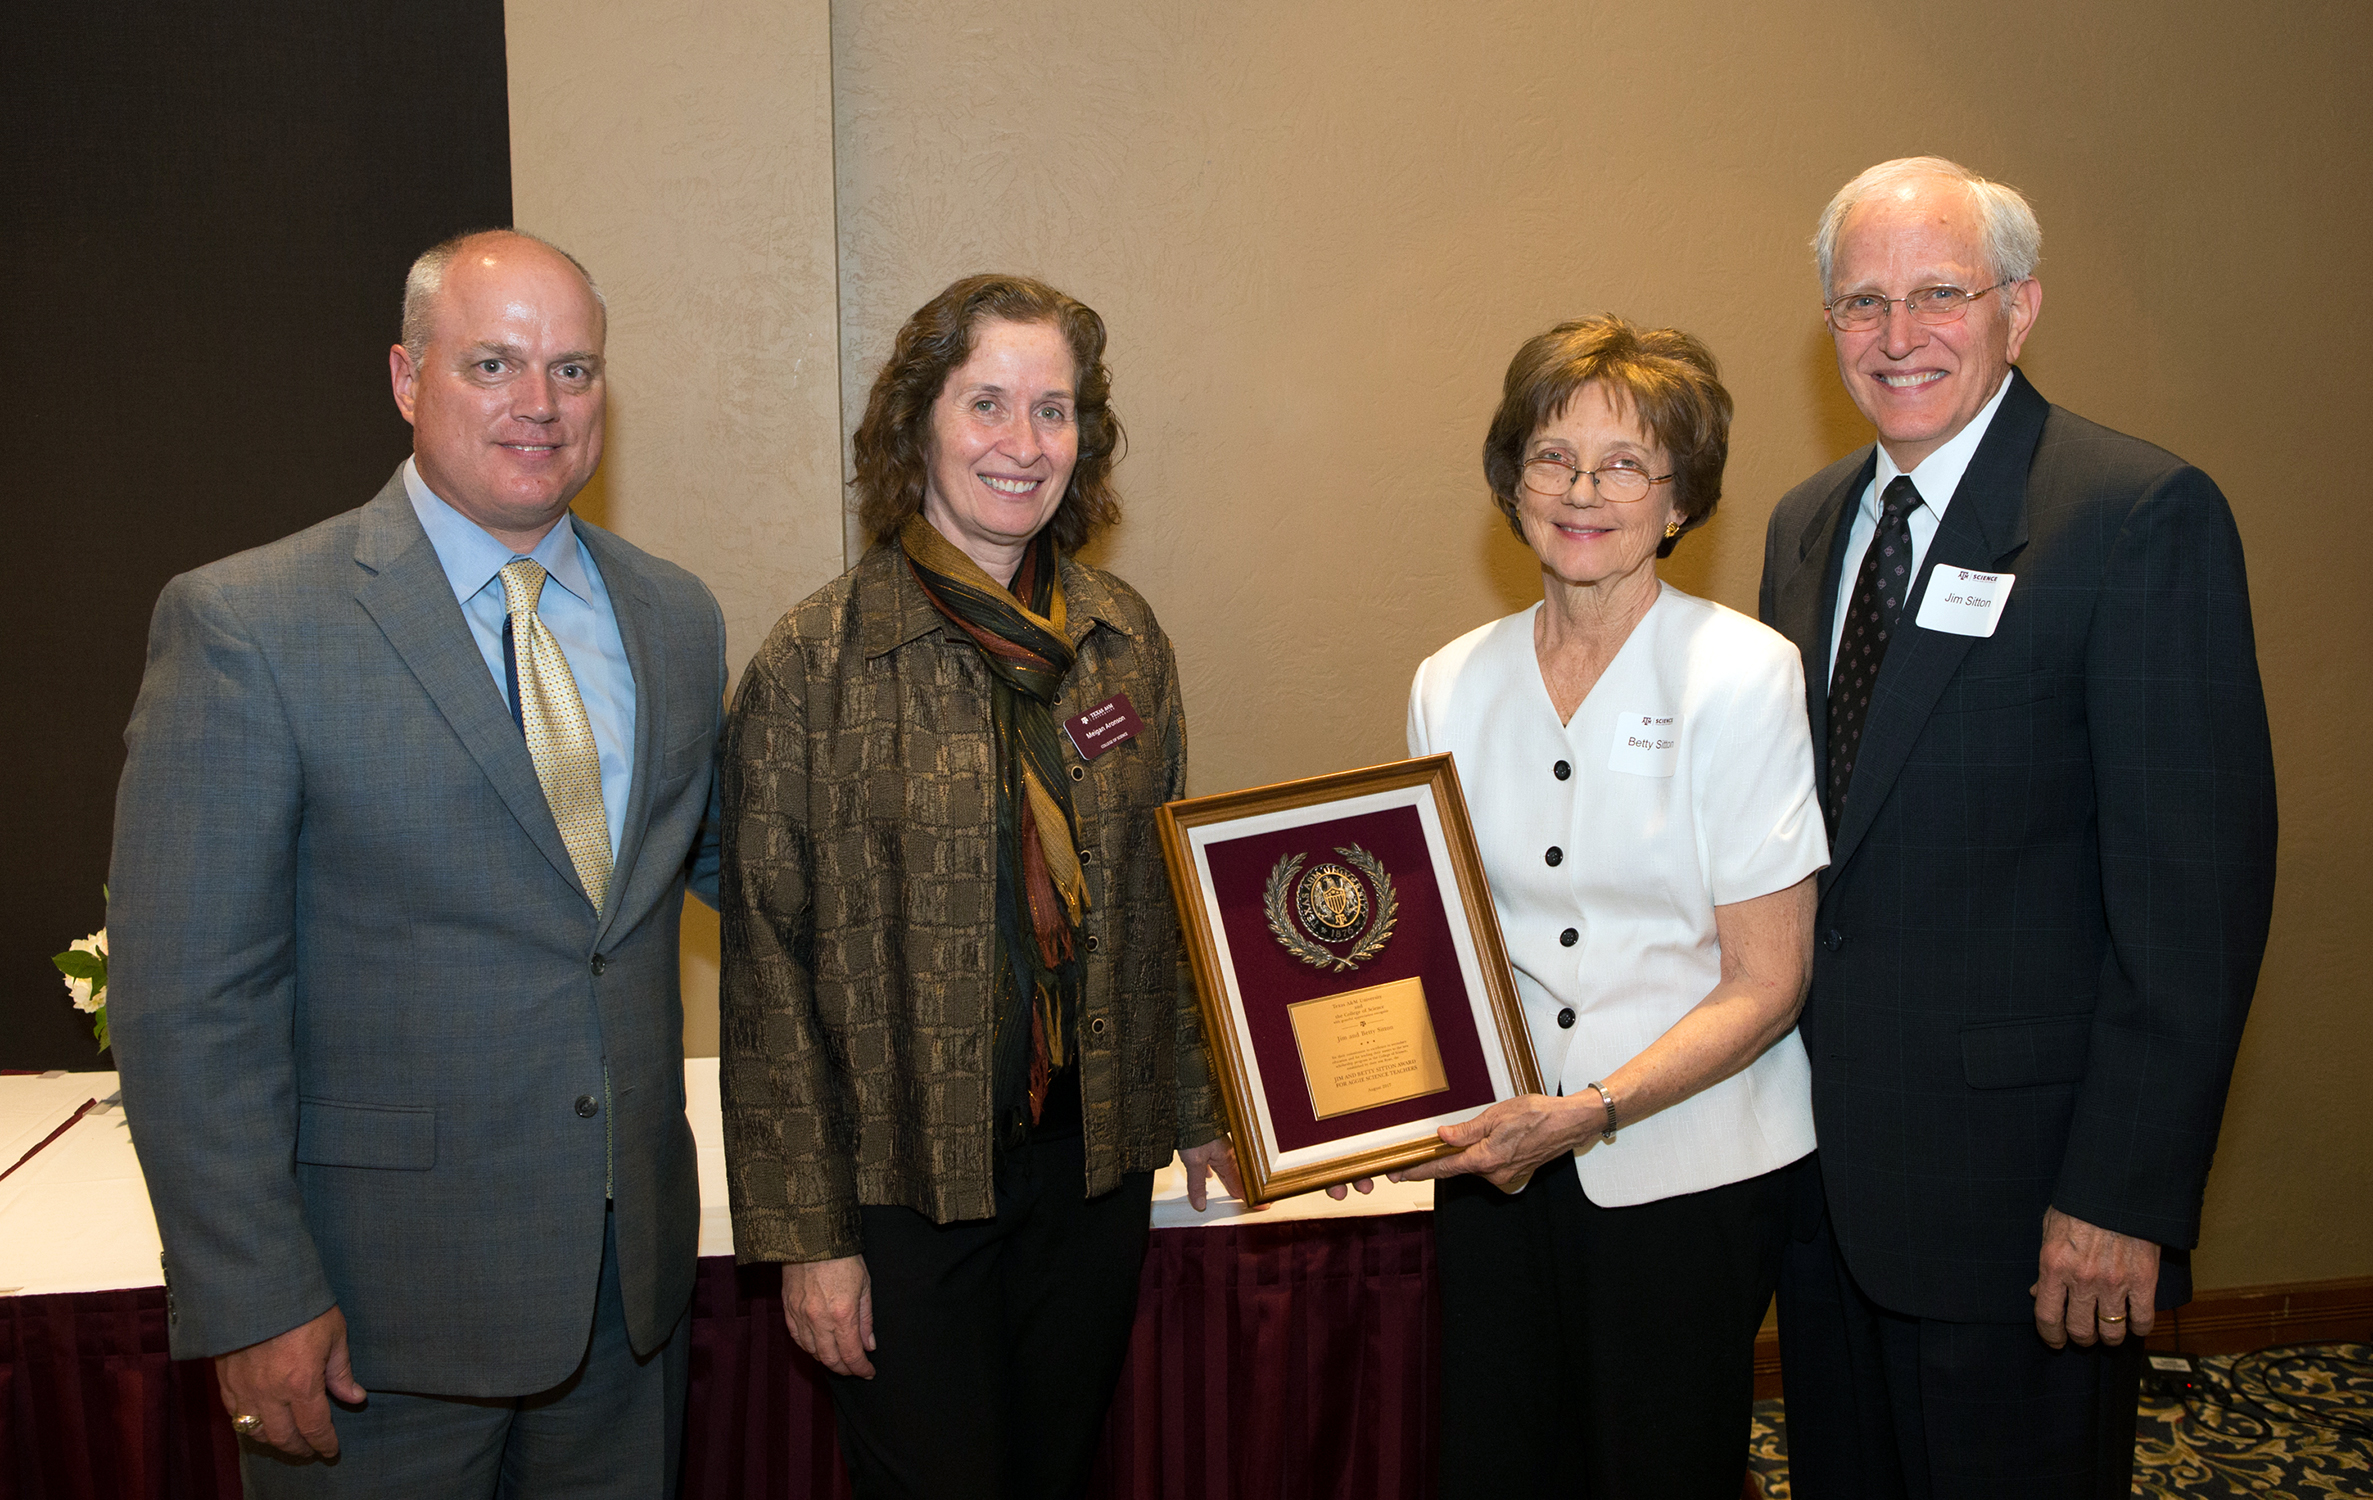 Dean Meigan Aronson and Randy Lunsford award donors with a recognition plaque